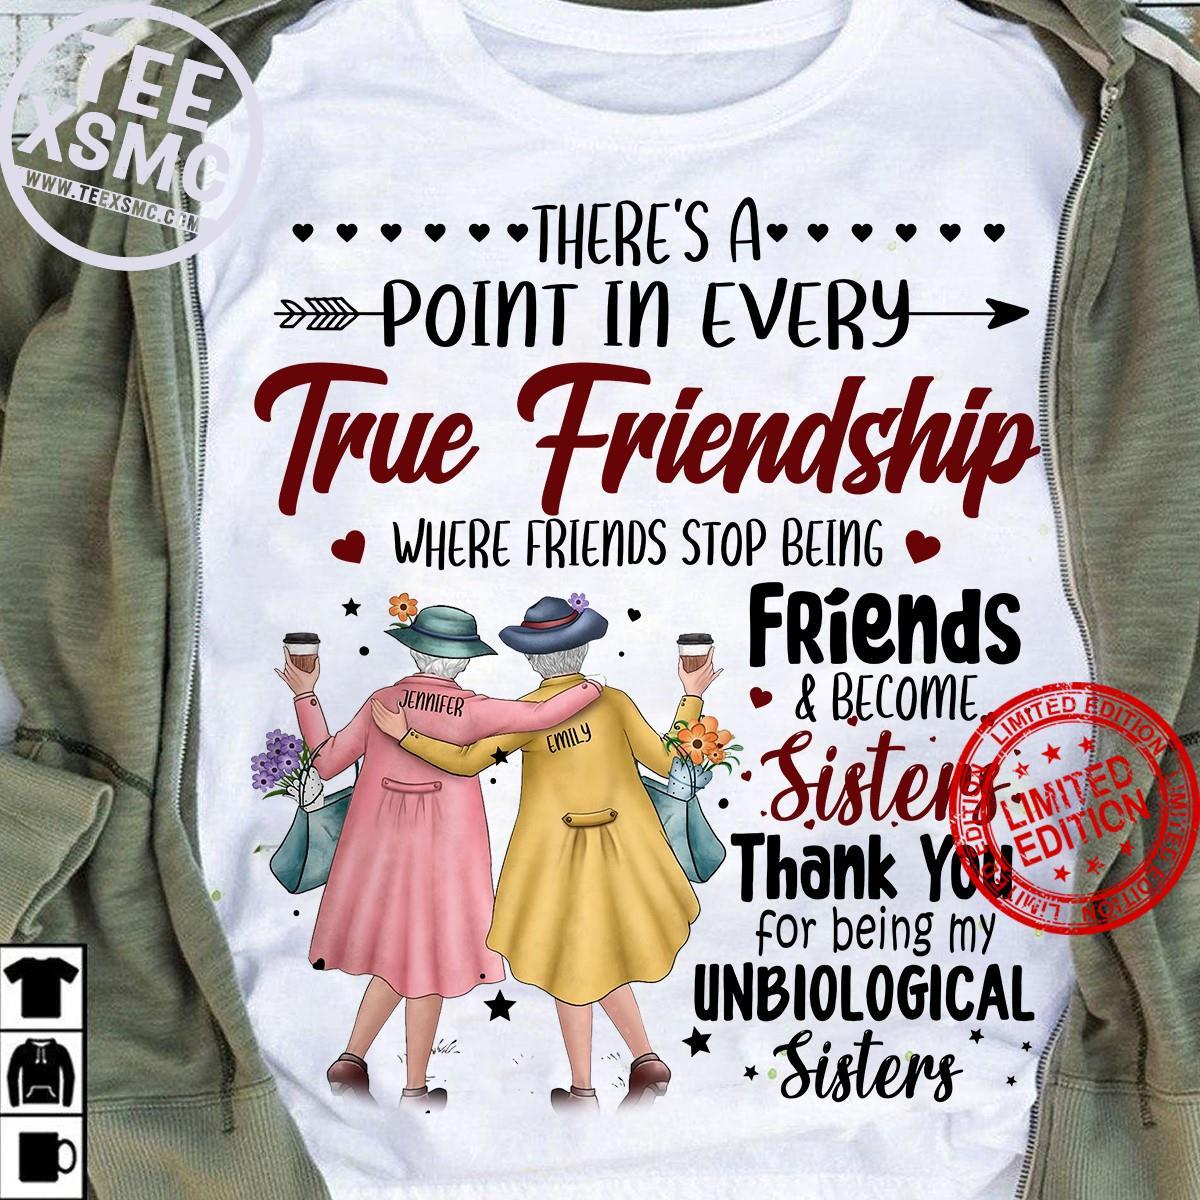 There's A Point In Every True Friendship Where Friends Stop Being Friends Shirt